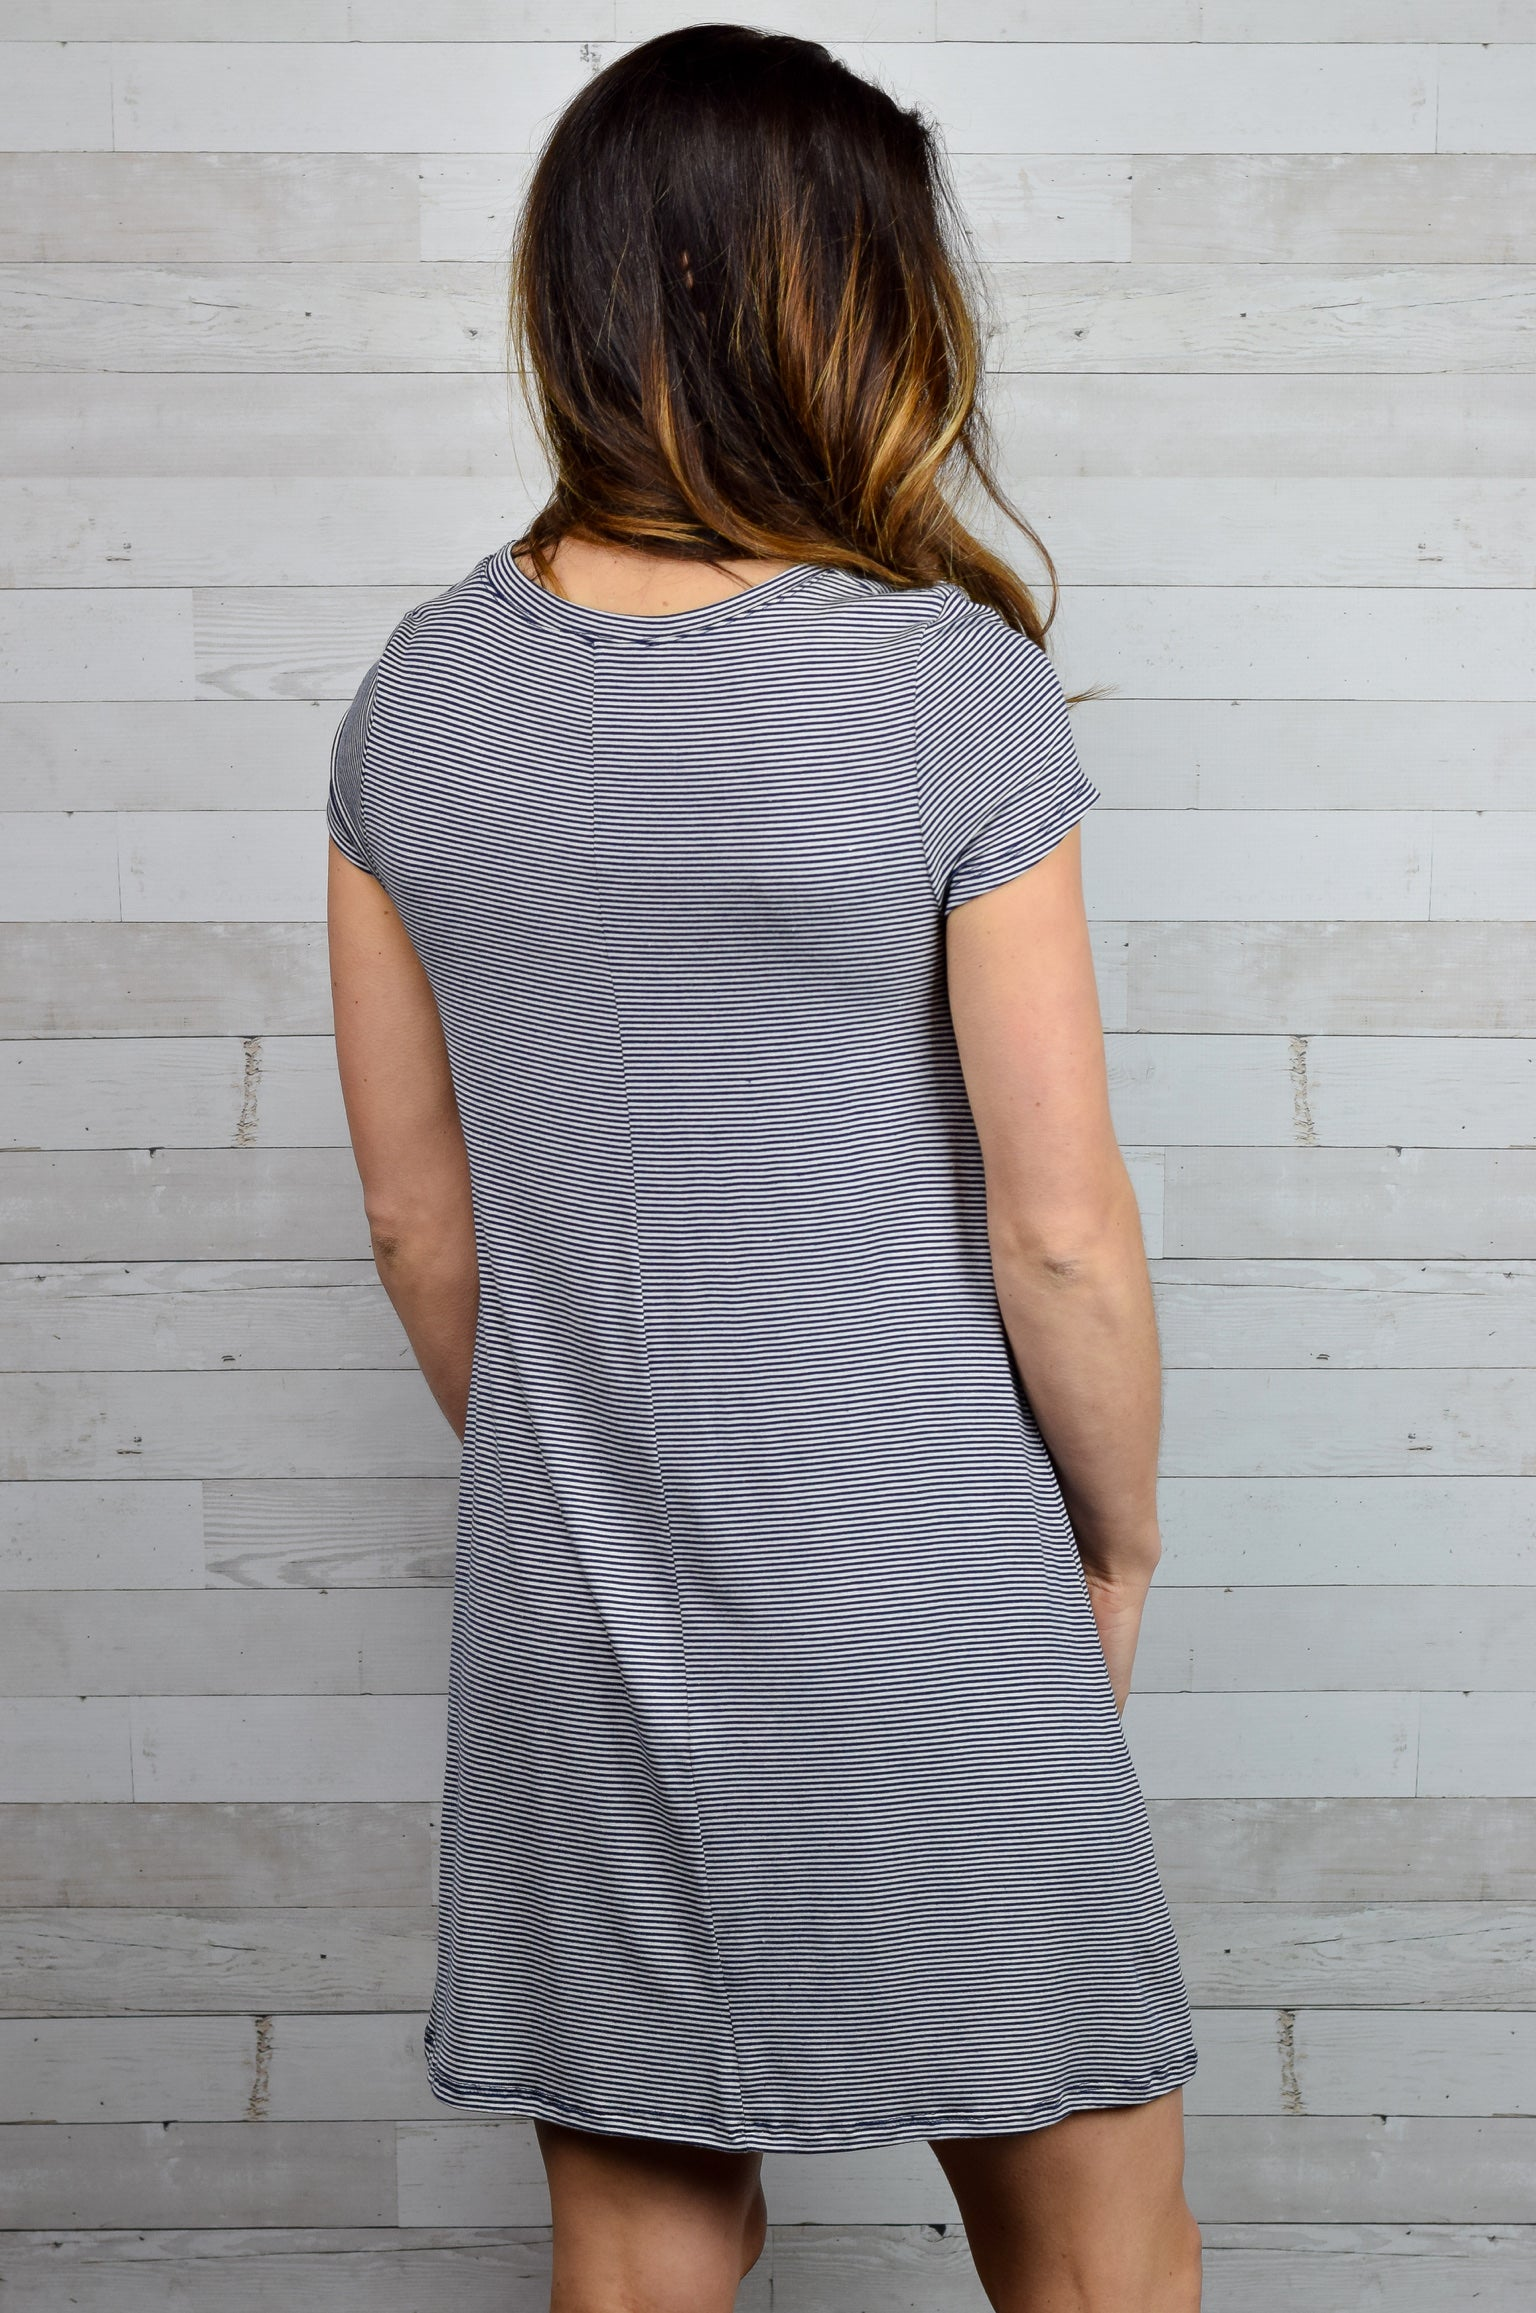 Any Other Day Tshirt Dress - Navy and Grey